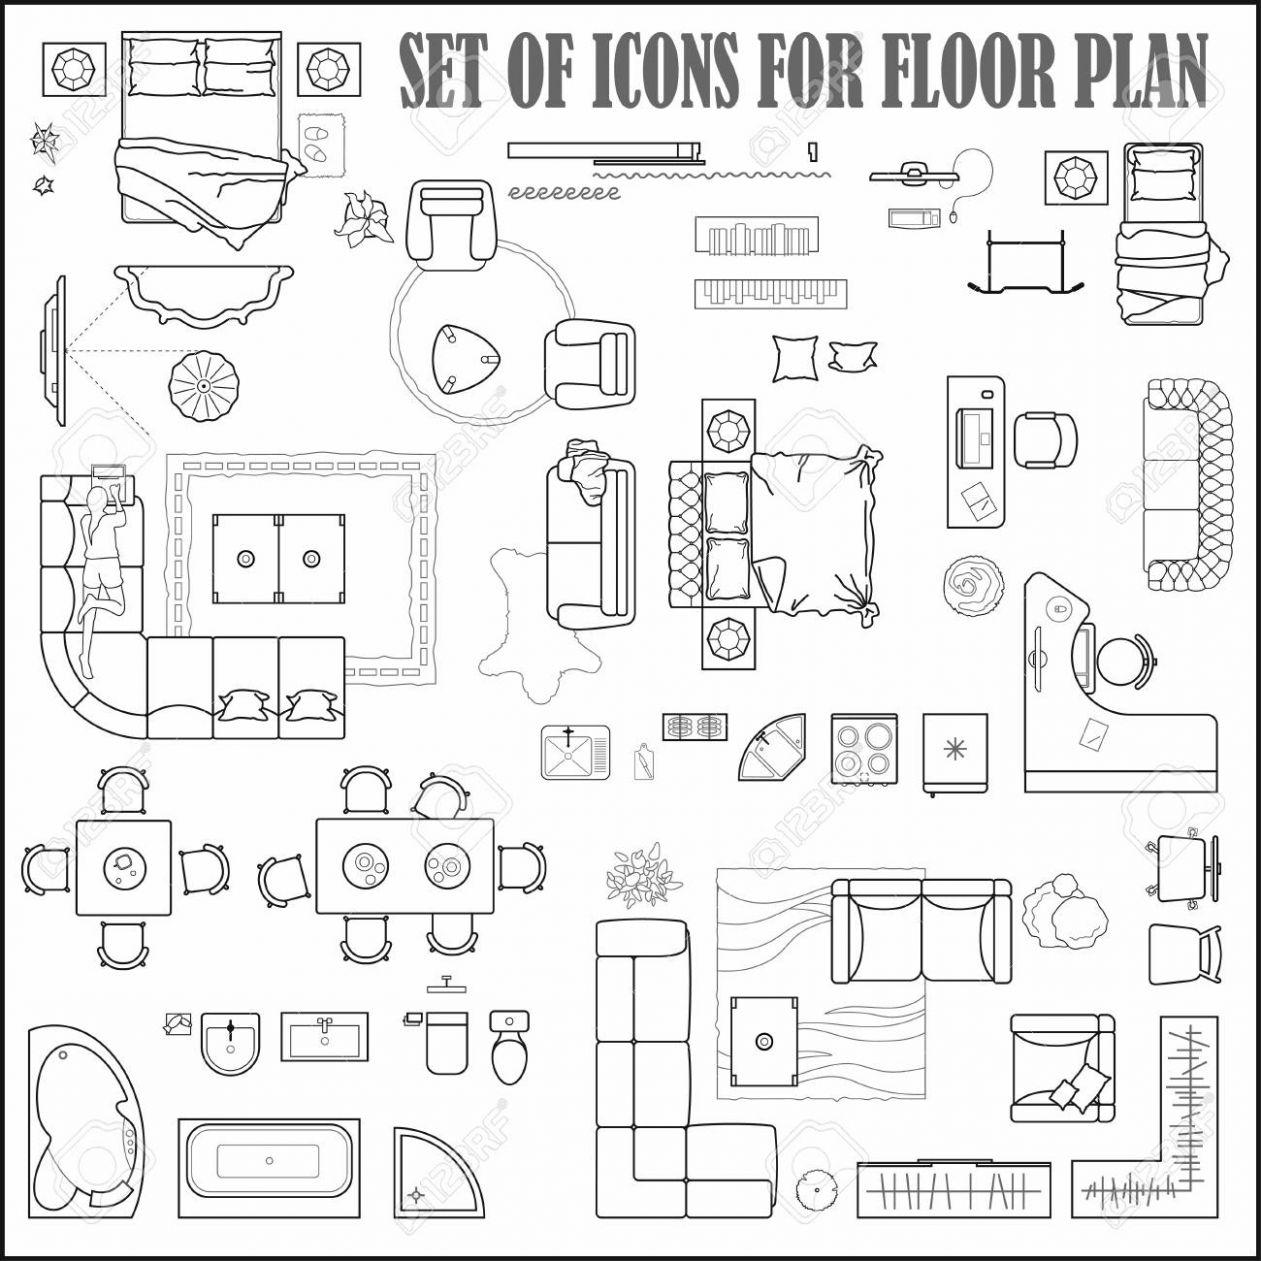 Floor plan icons set for design interior and architectural project..